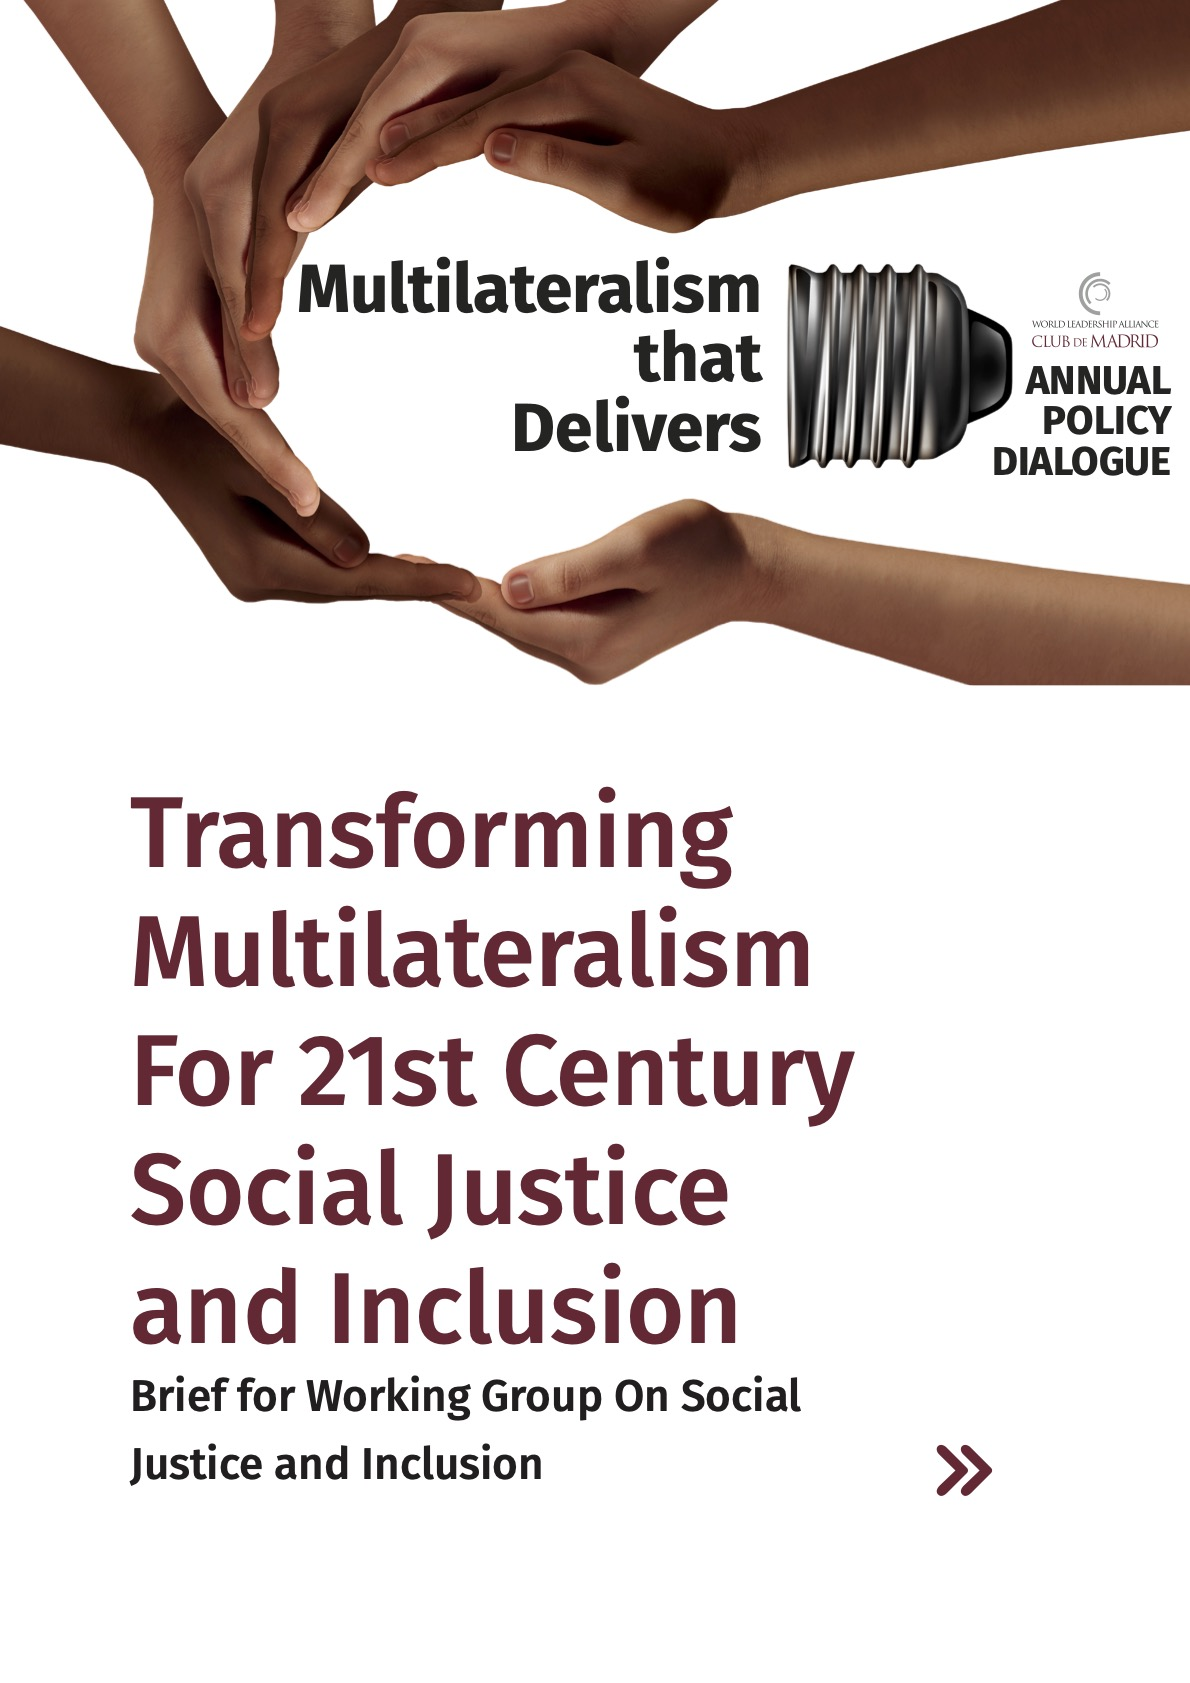 Transforming Multilateralism for 21st Century Social Justice and Inclusion